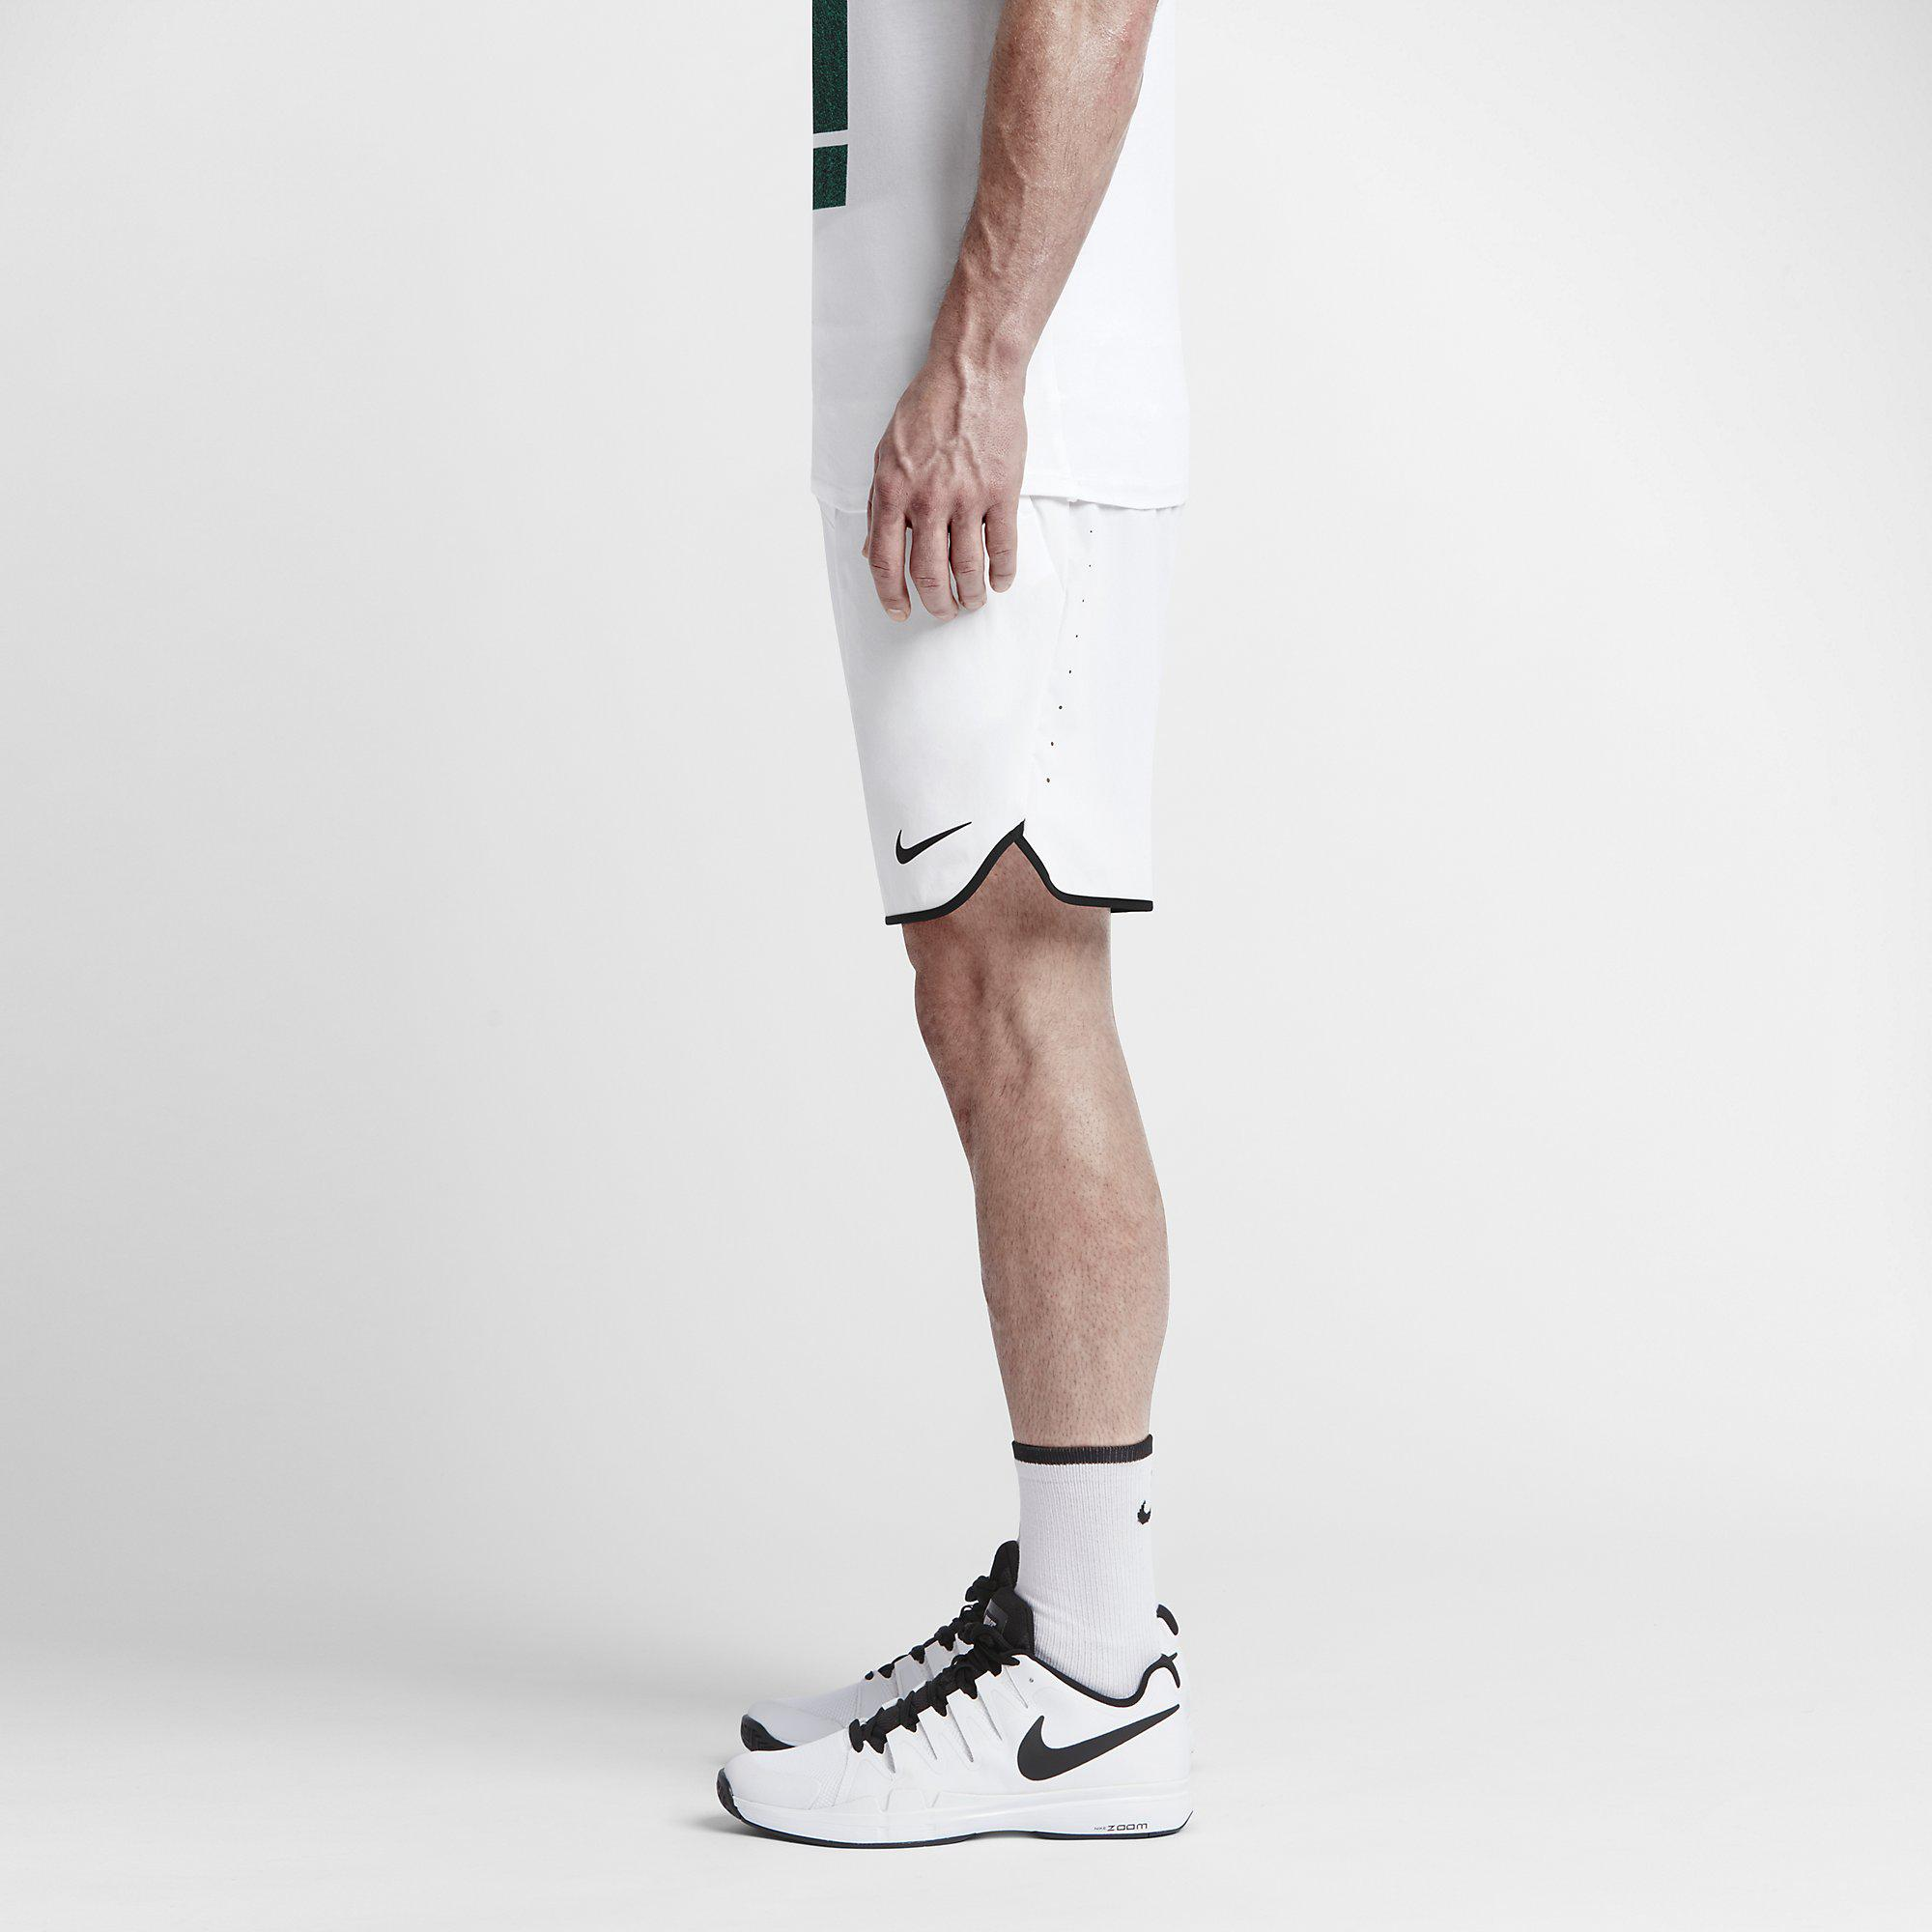 Nike Mens Flex Gladiator 9 Inch Shorts - White - Tennisnuts.com e97524c7bc